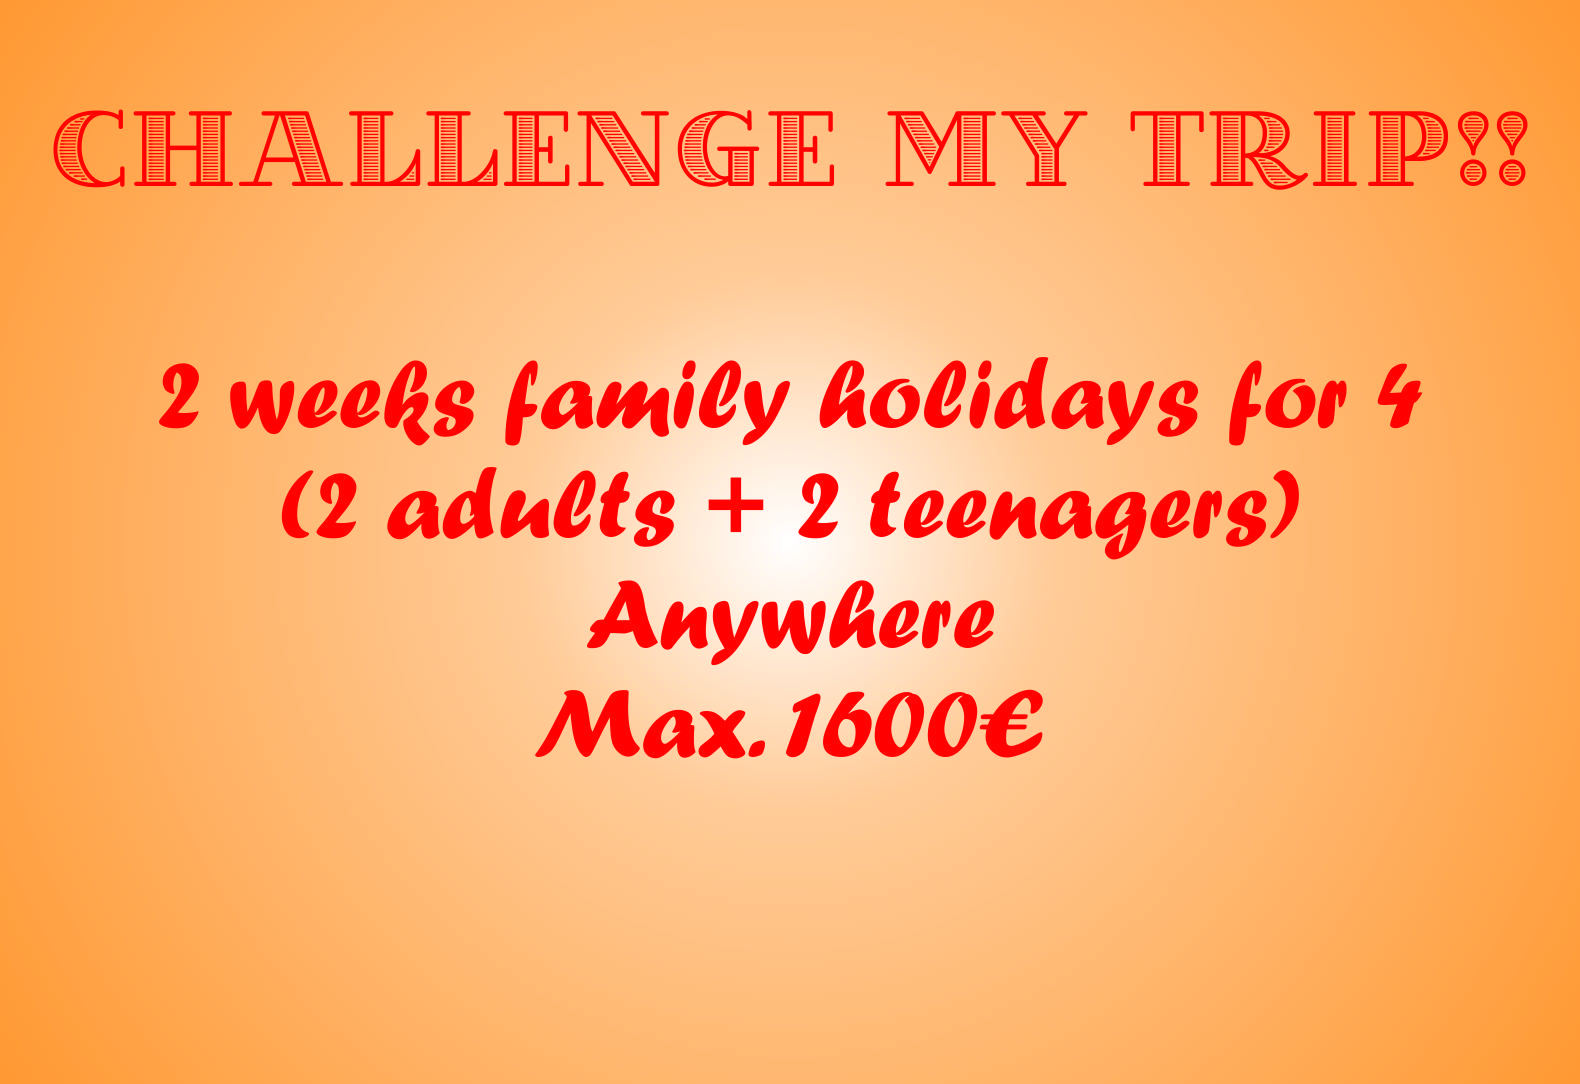 Challenge my trip: 2 weeks family holidays for under 1600€